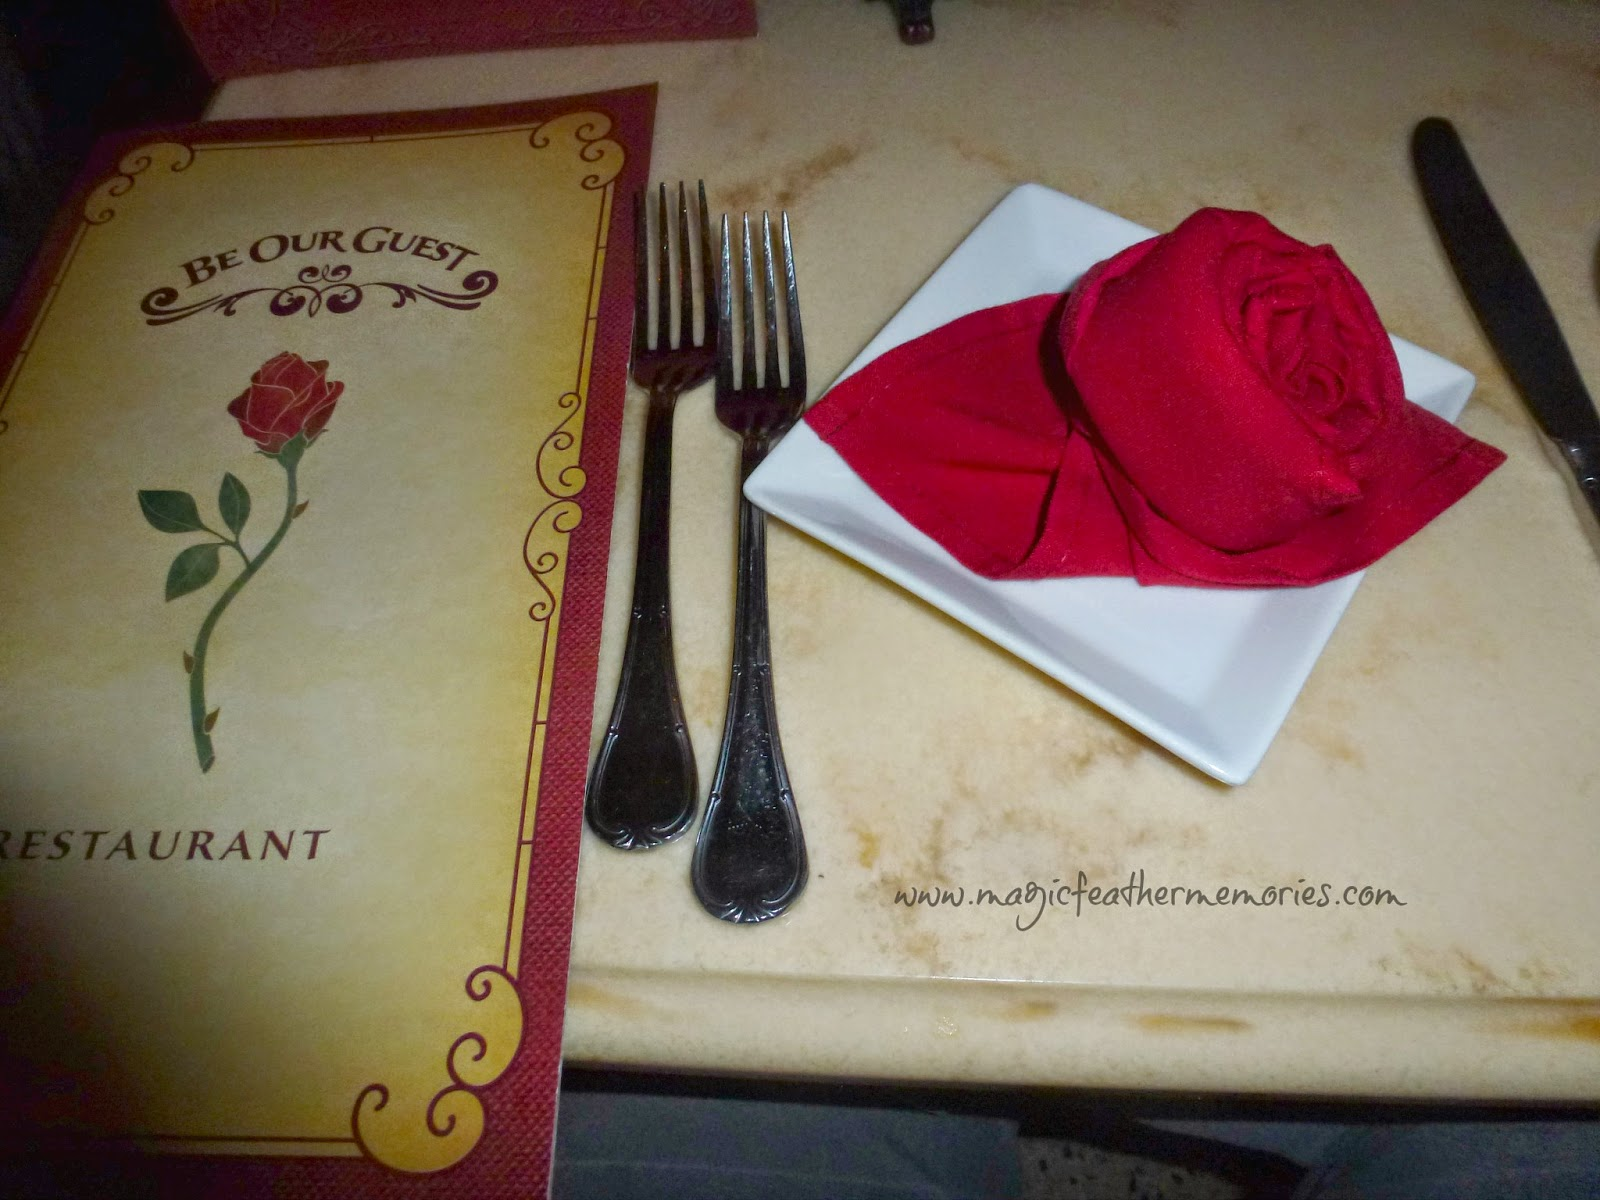 magic feather memories be our guest restaurant review walt